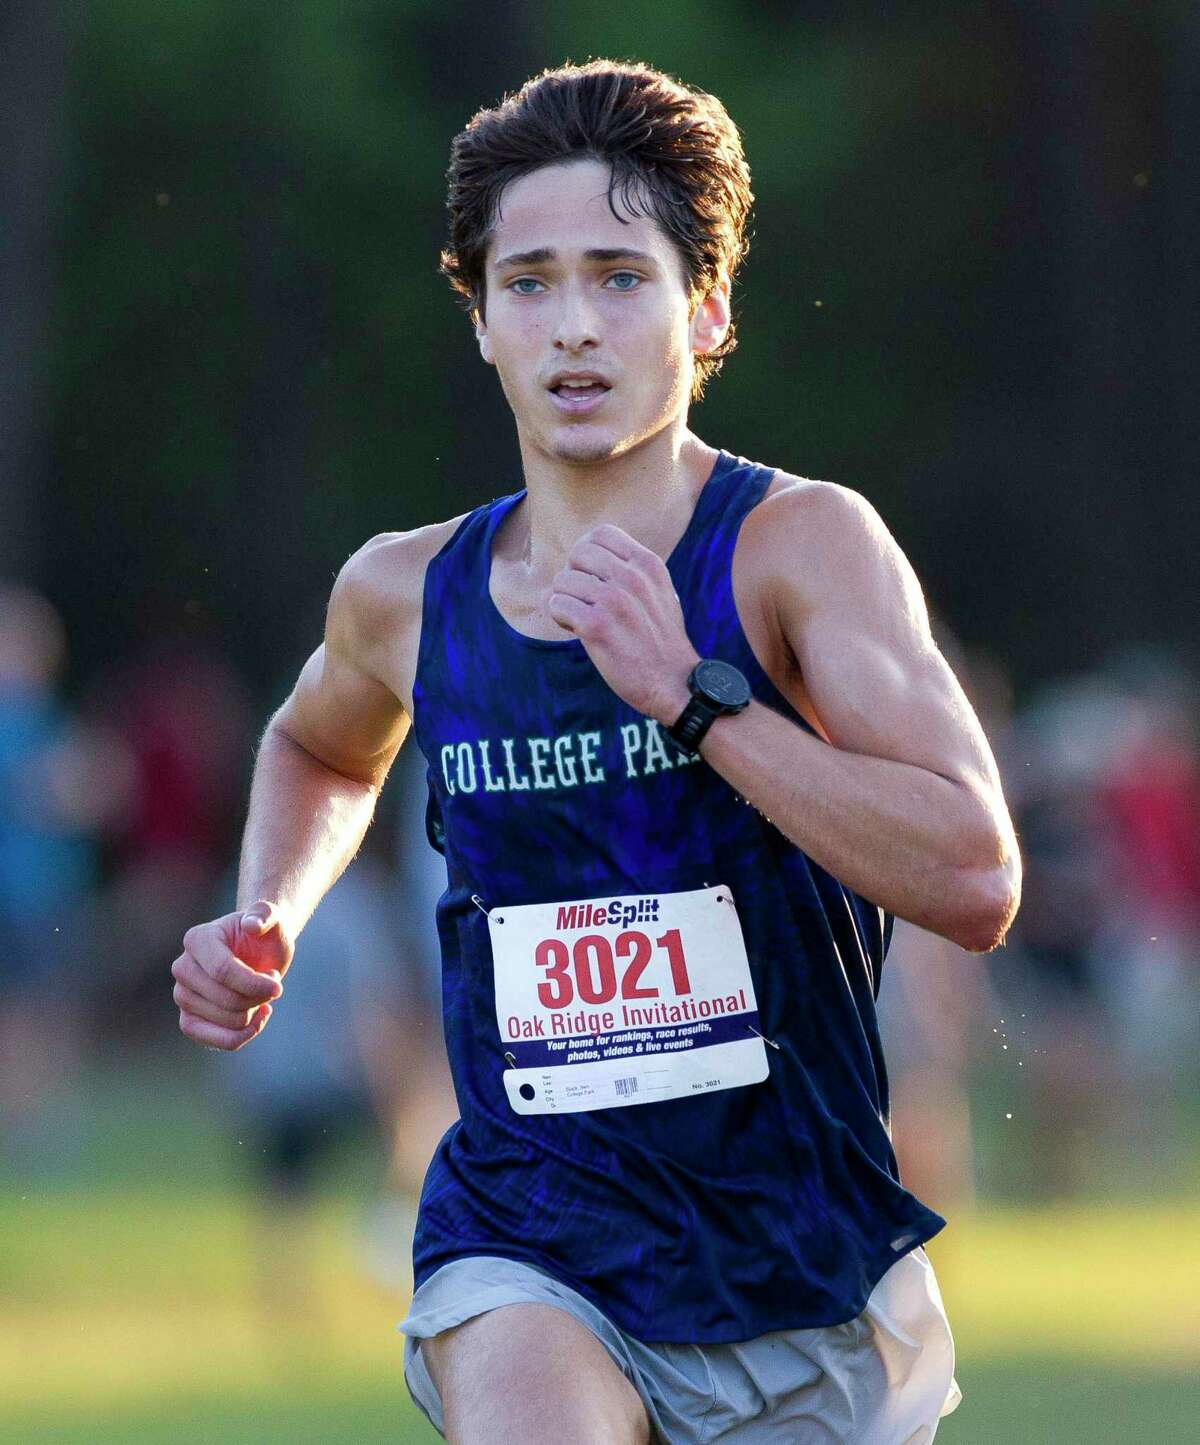 Ben Black of College Park finished third overall during in the Oak Ridge Cross Country Invitational at Oak Ridge High School, Saturday, Sept. 7, 2019.